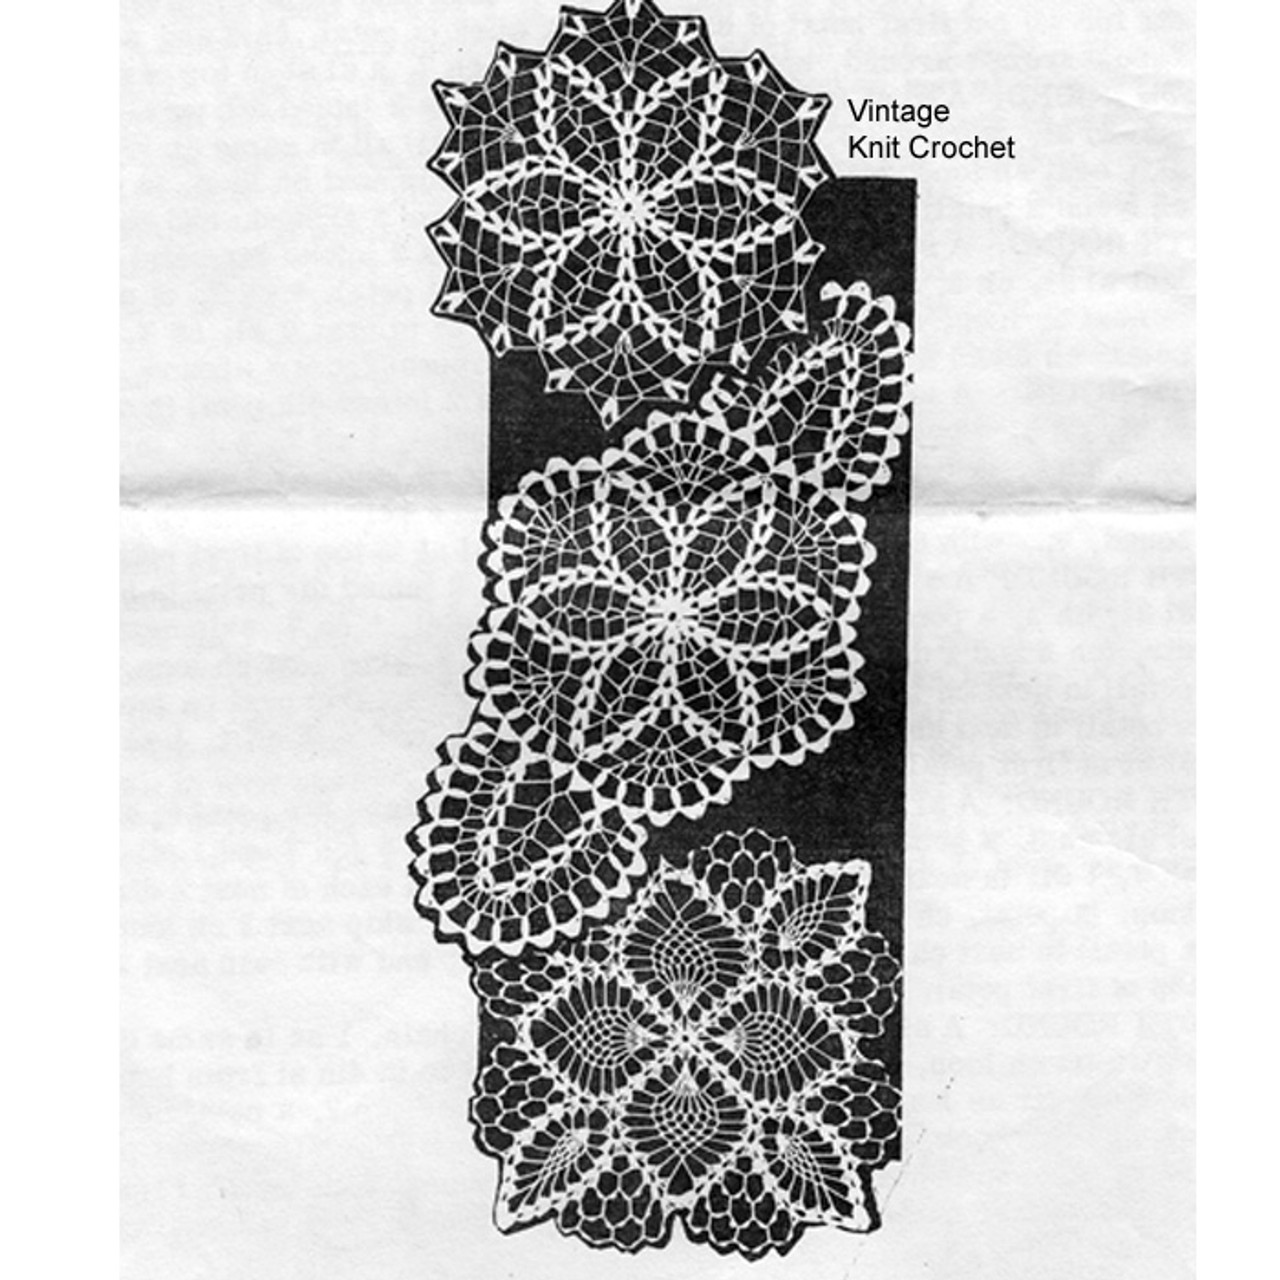 Mail Order Trio of Crocheted Doilies Pattern No 7468